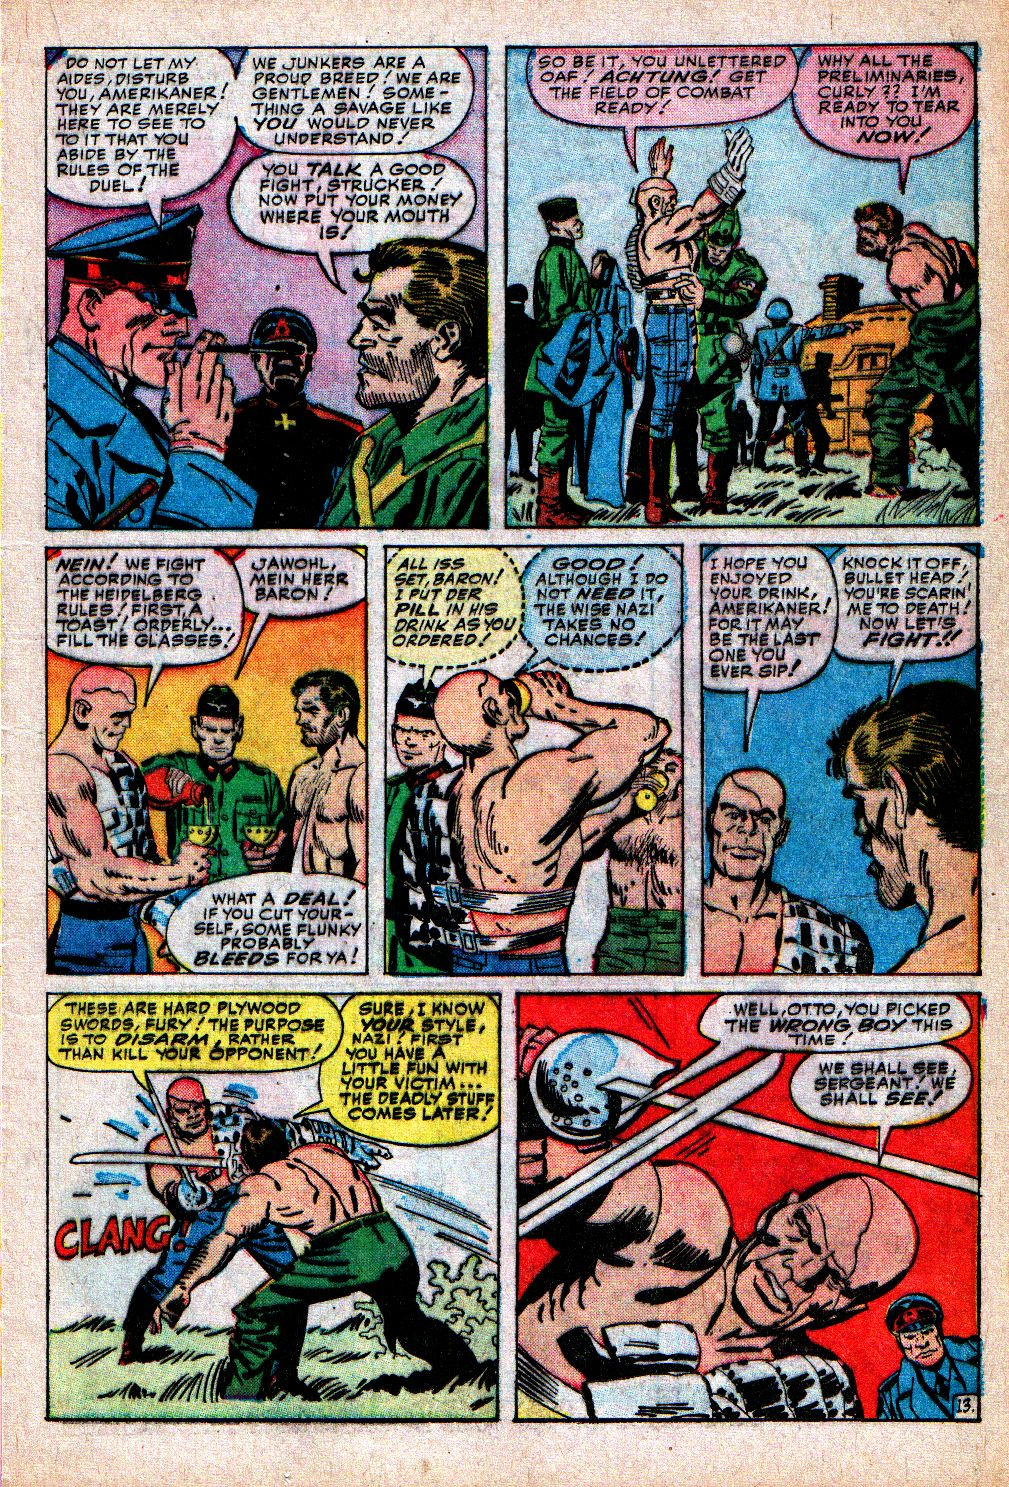 Read online Sgt. Fury comic -  Issue #5 - 17